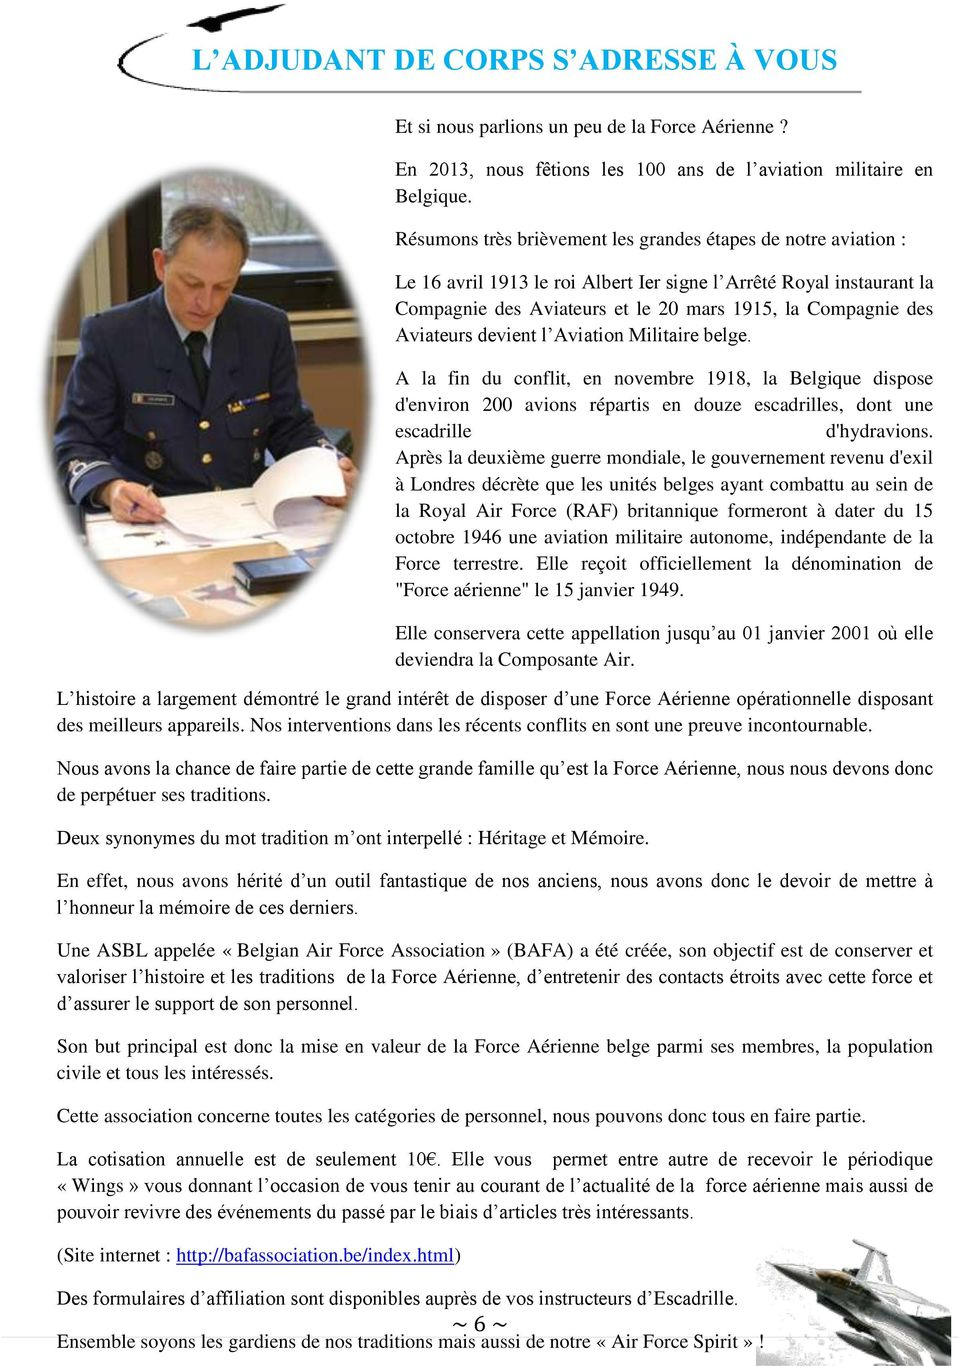 division militaire synonyme